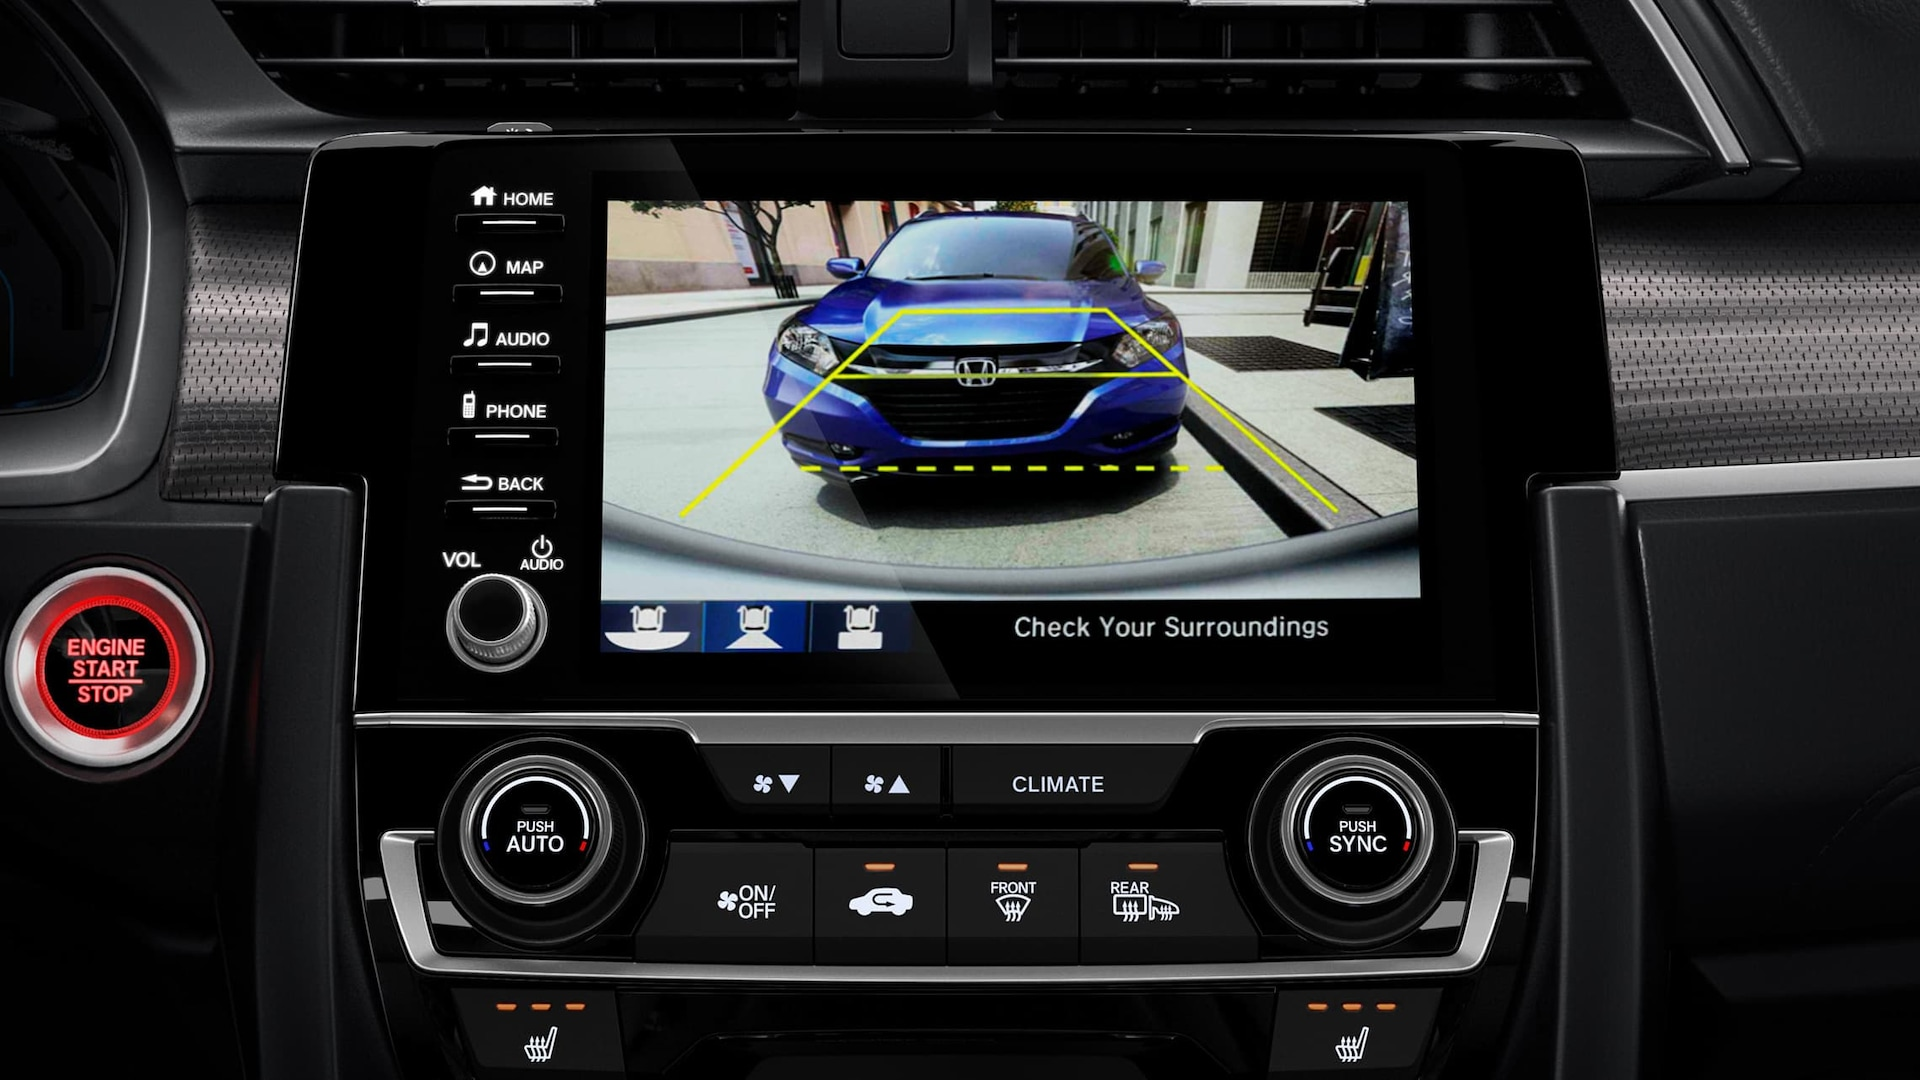 Multi-angle rearview camera detail on Display-Audio touchscreen in 2019 Honda Civic Touring Sedan.